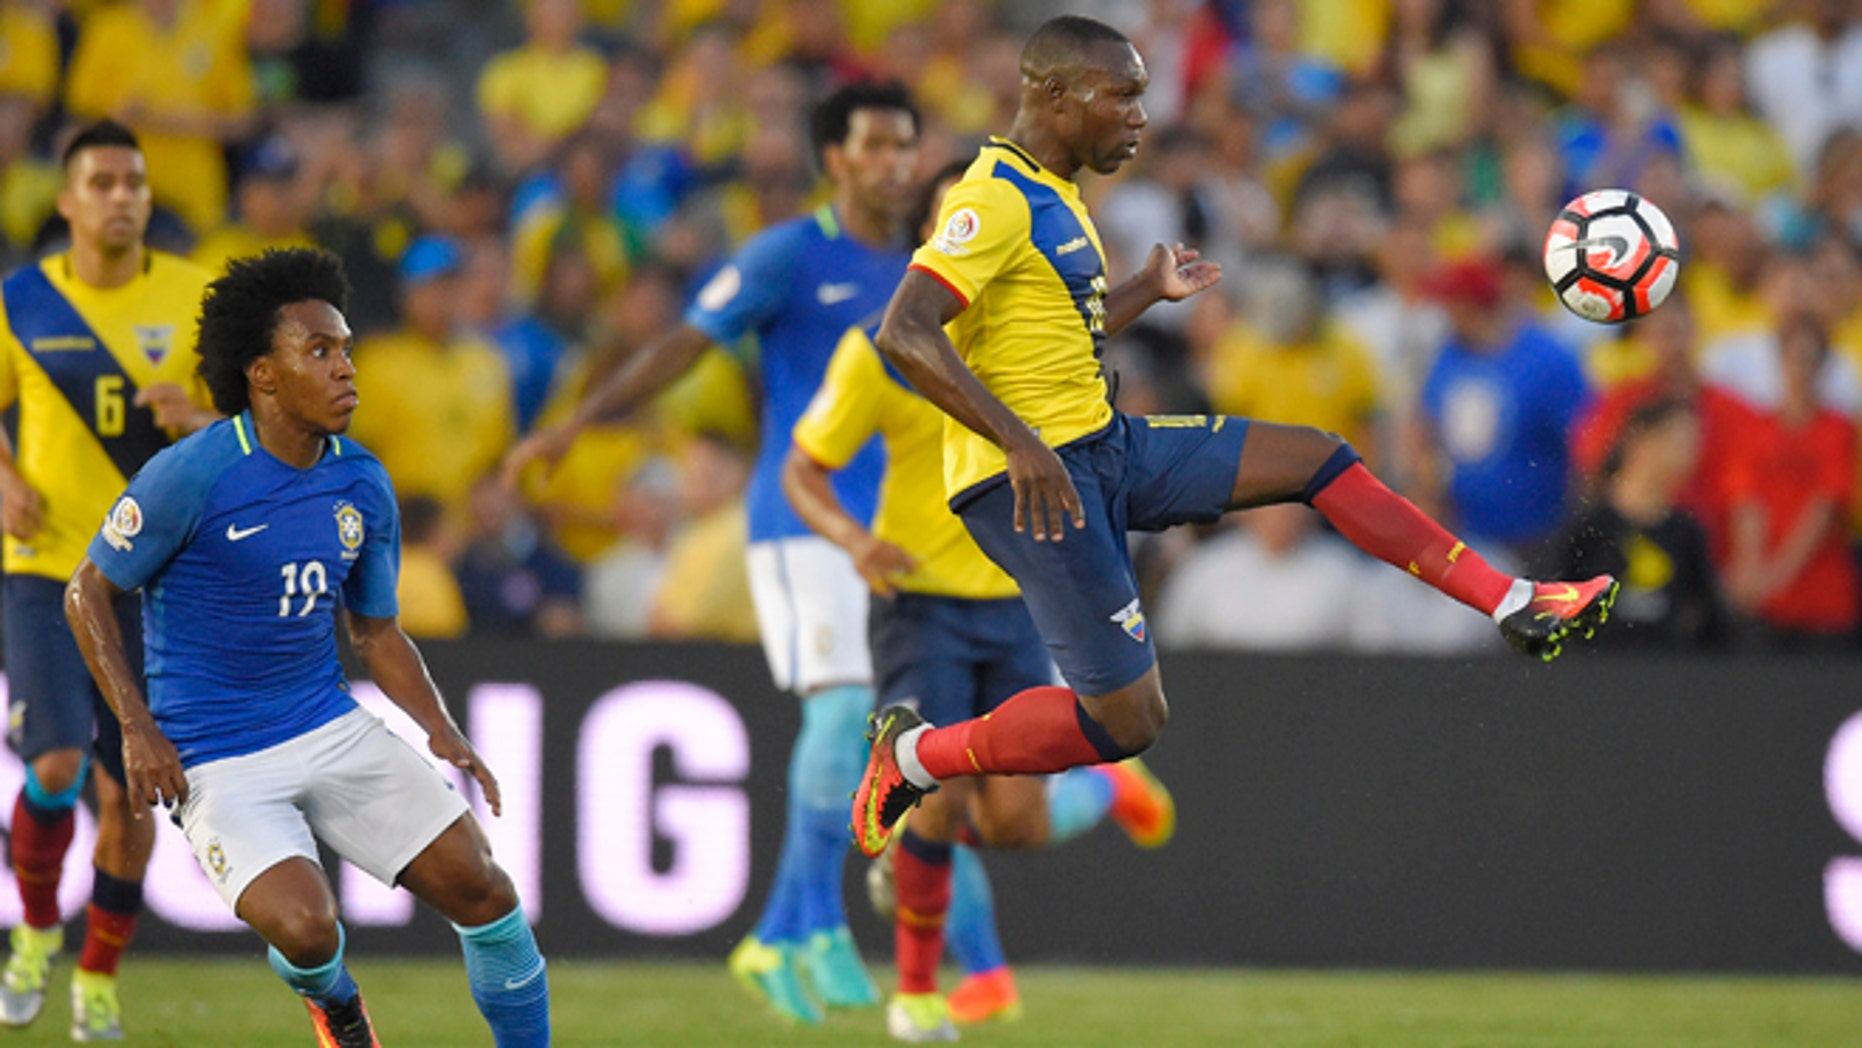 Ecuador midfielder Walter Ayovi, right, kicks the ball as Brazil midfielder Willian, left, watches during a Copa America group B soccer match at the Rose Bowl, Saturday, June 4, 2016, in Pasadena, Calif. (AP Photo/Mark J. Terrill)